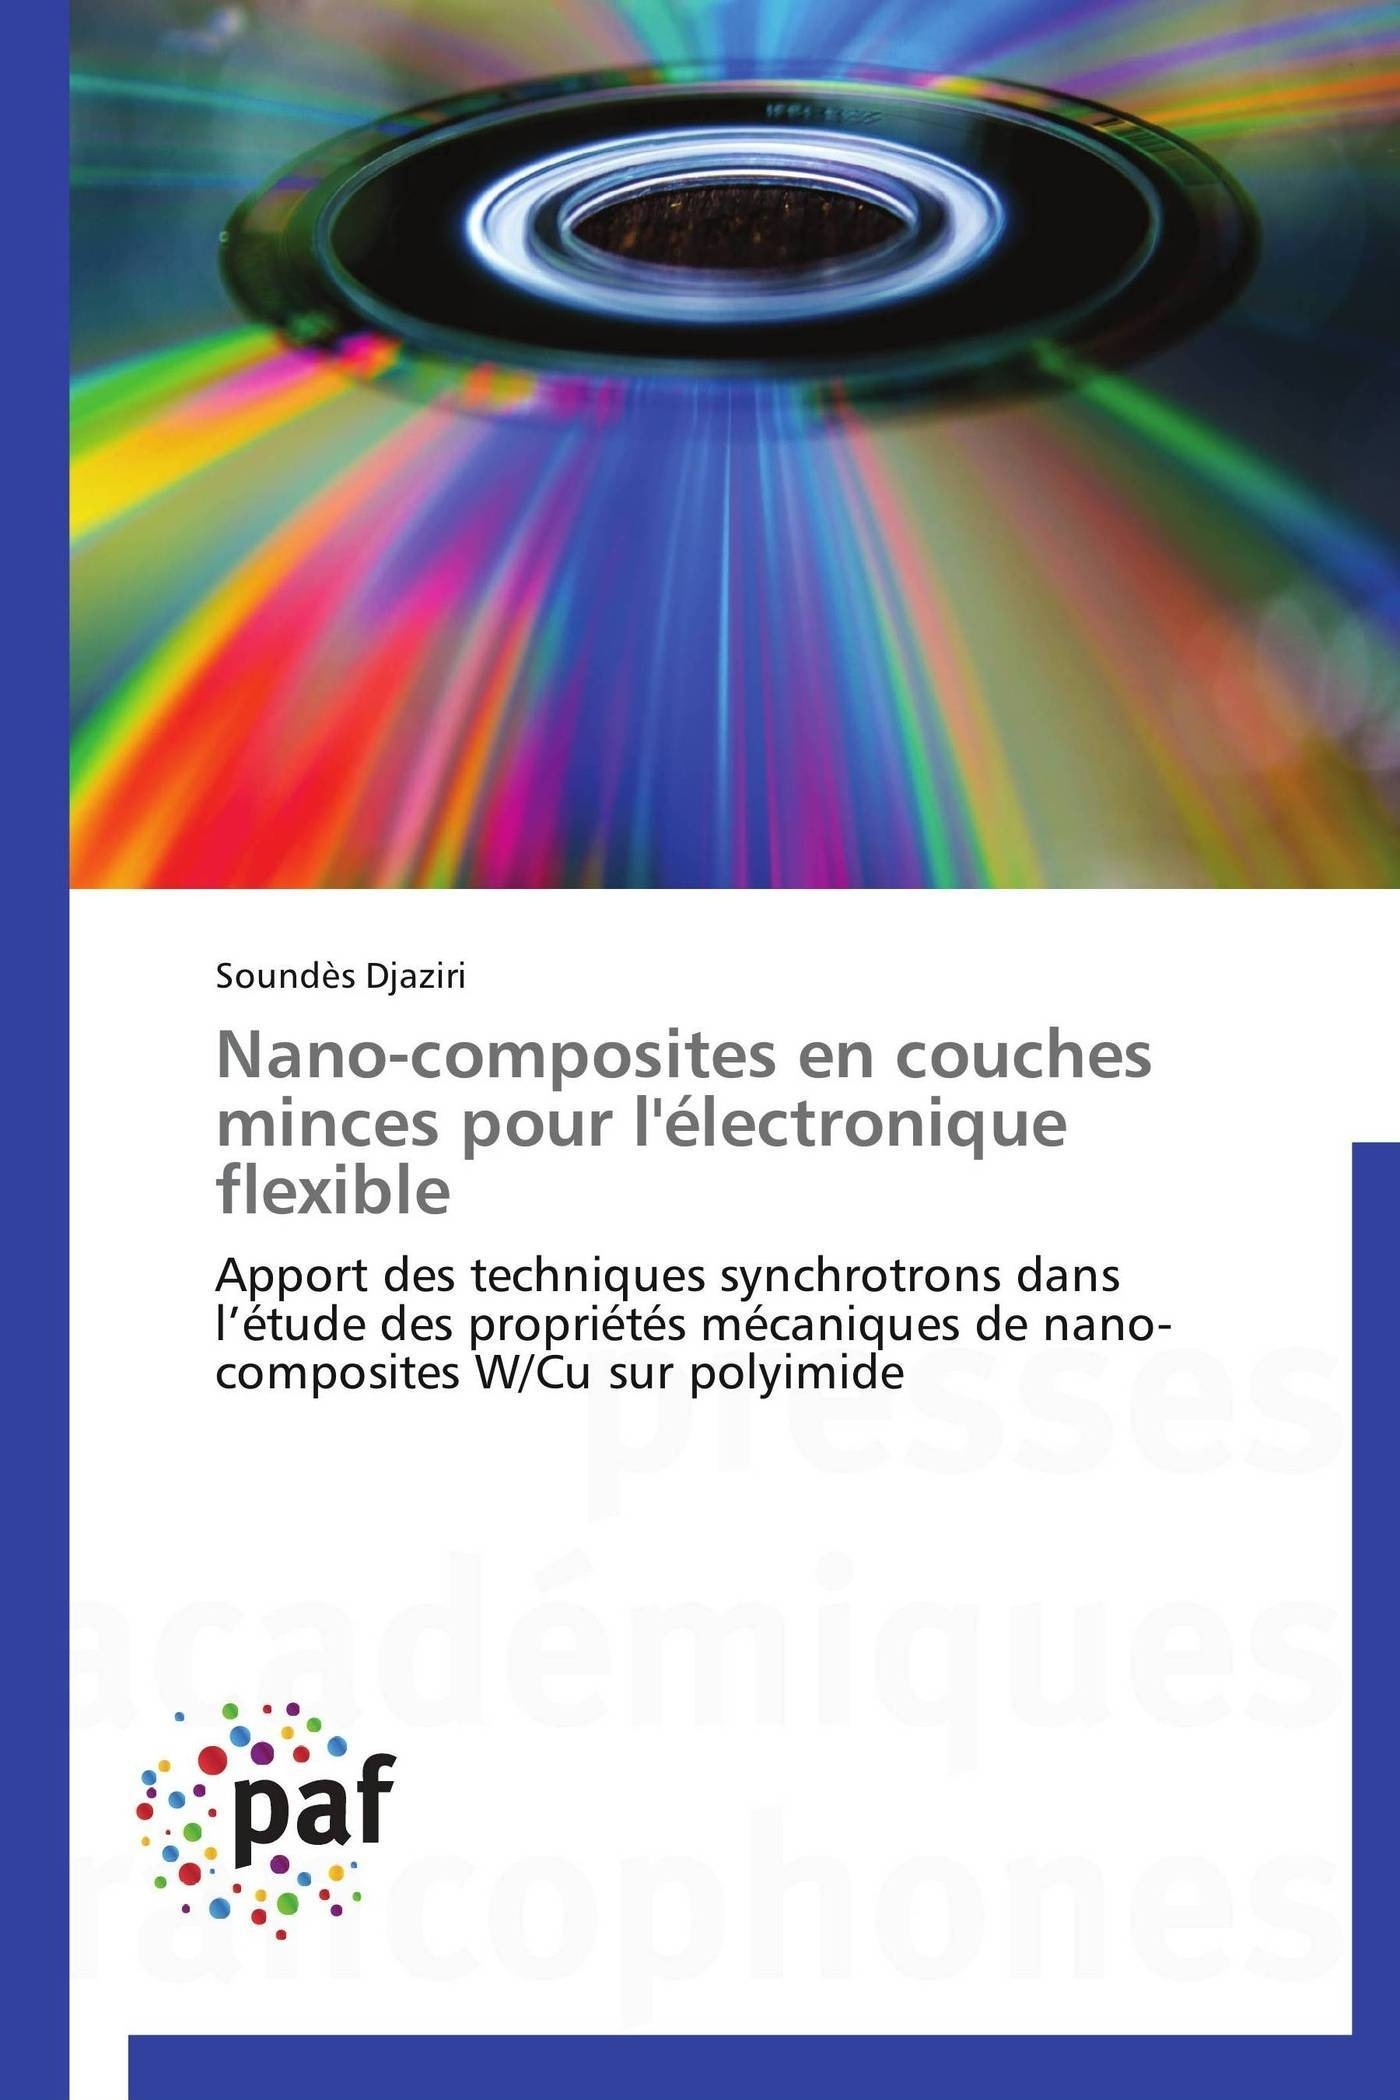 NANO-COMPOSITES EN COUCHES MINCES POUR L'ELECTRONIQUE FLEXIBLE